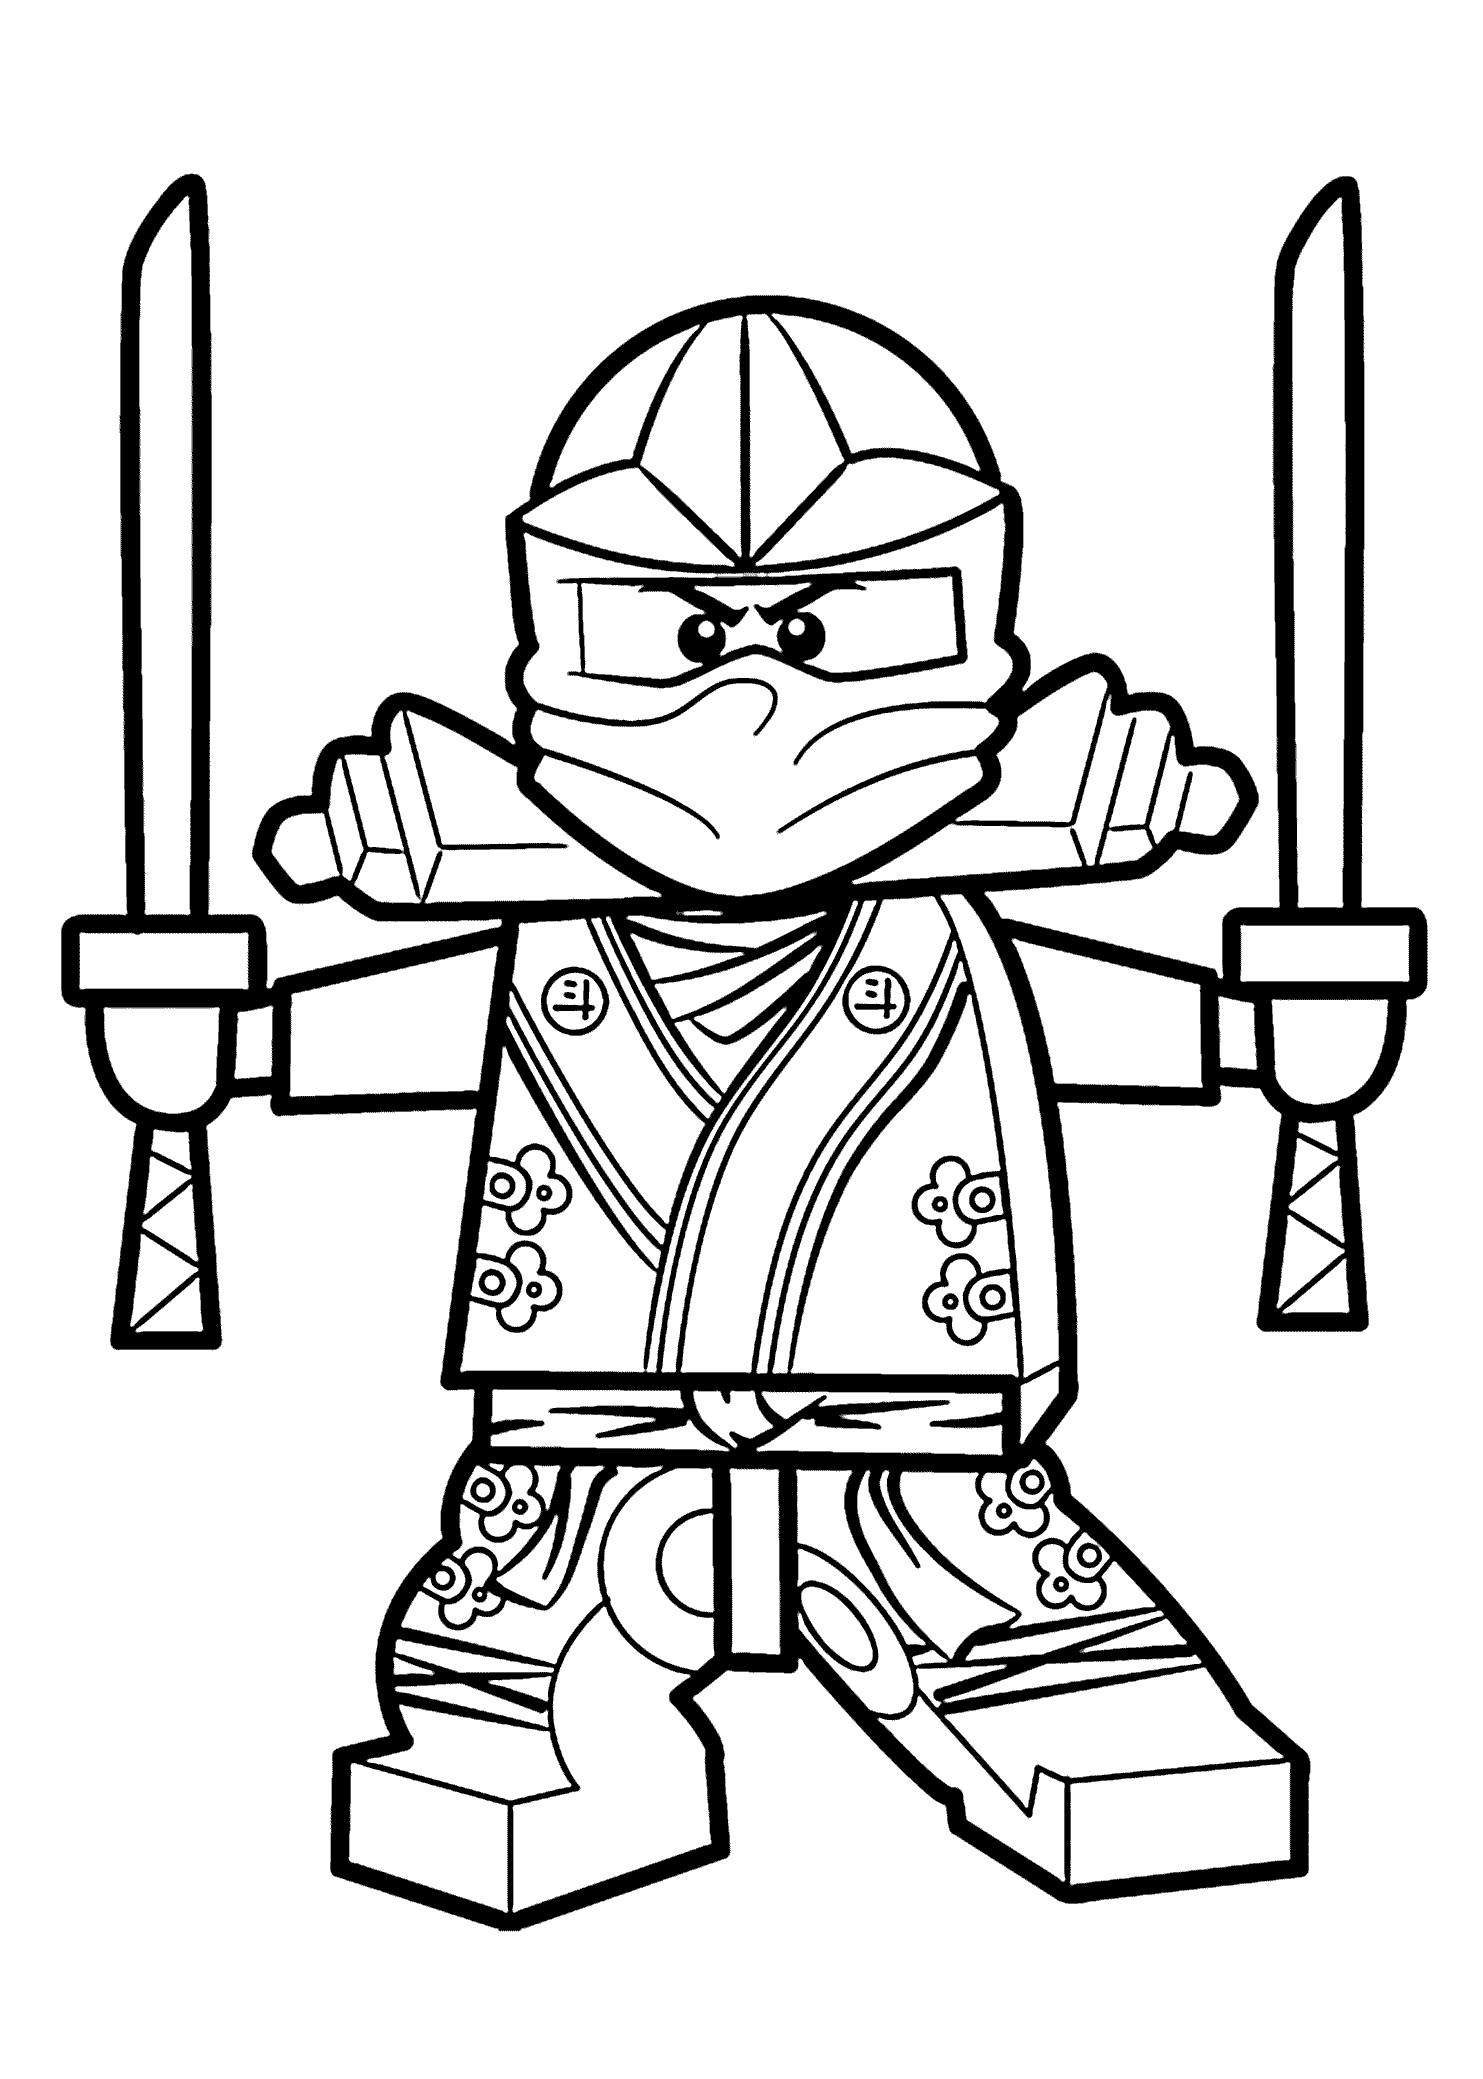 Perspective Ninjago Lloyd Coloring Pages Printable Lego Page Download Of Lego Dimensions Coloring Pages Collection Page Ninja Grig3 Printable